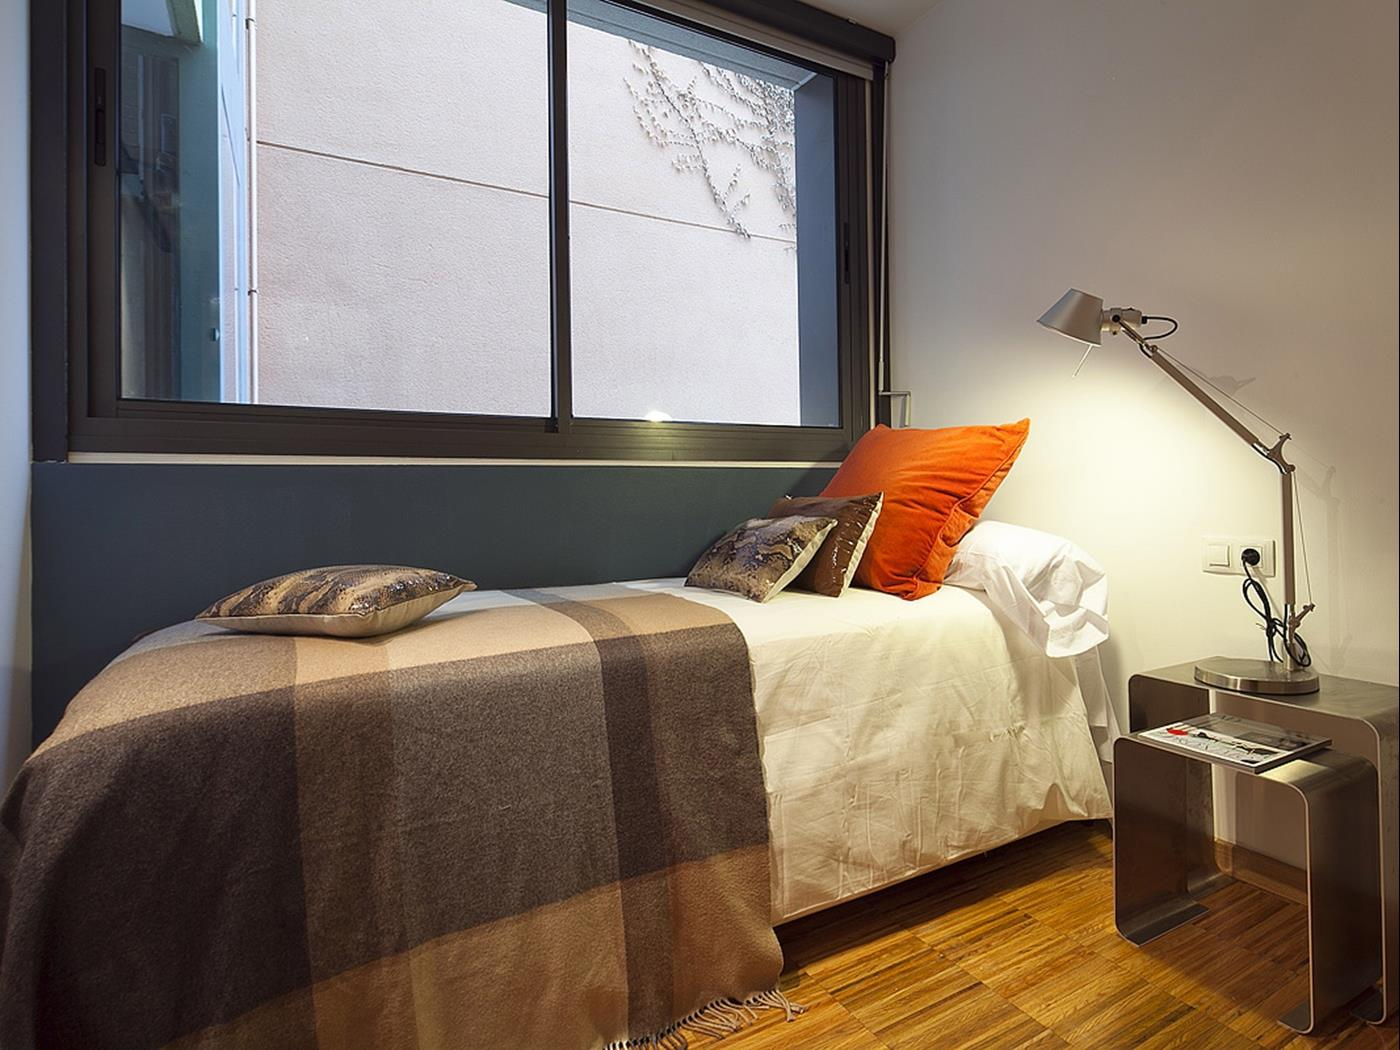 Duplex in Barcelona City Center and access to swimming pool for 6 - My Space Barcelona Apartments